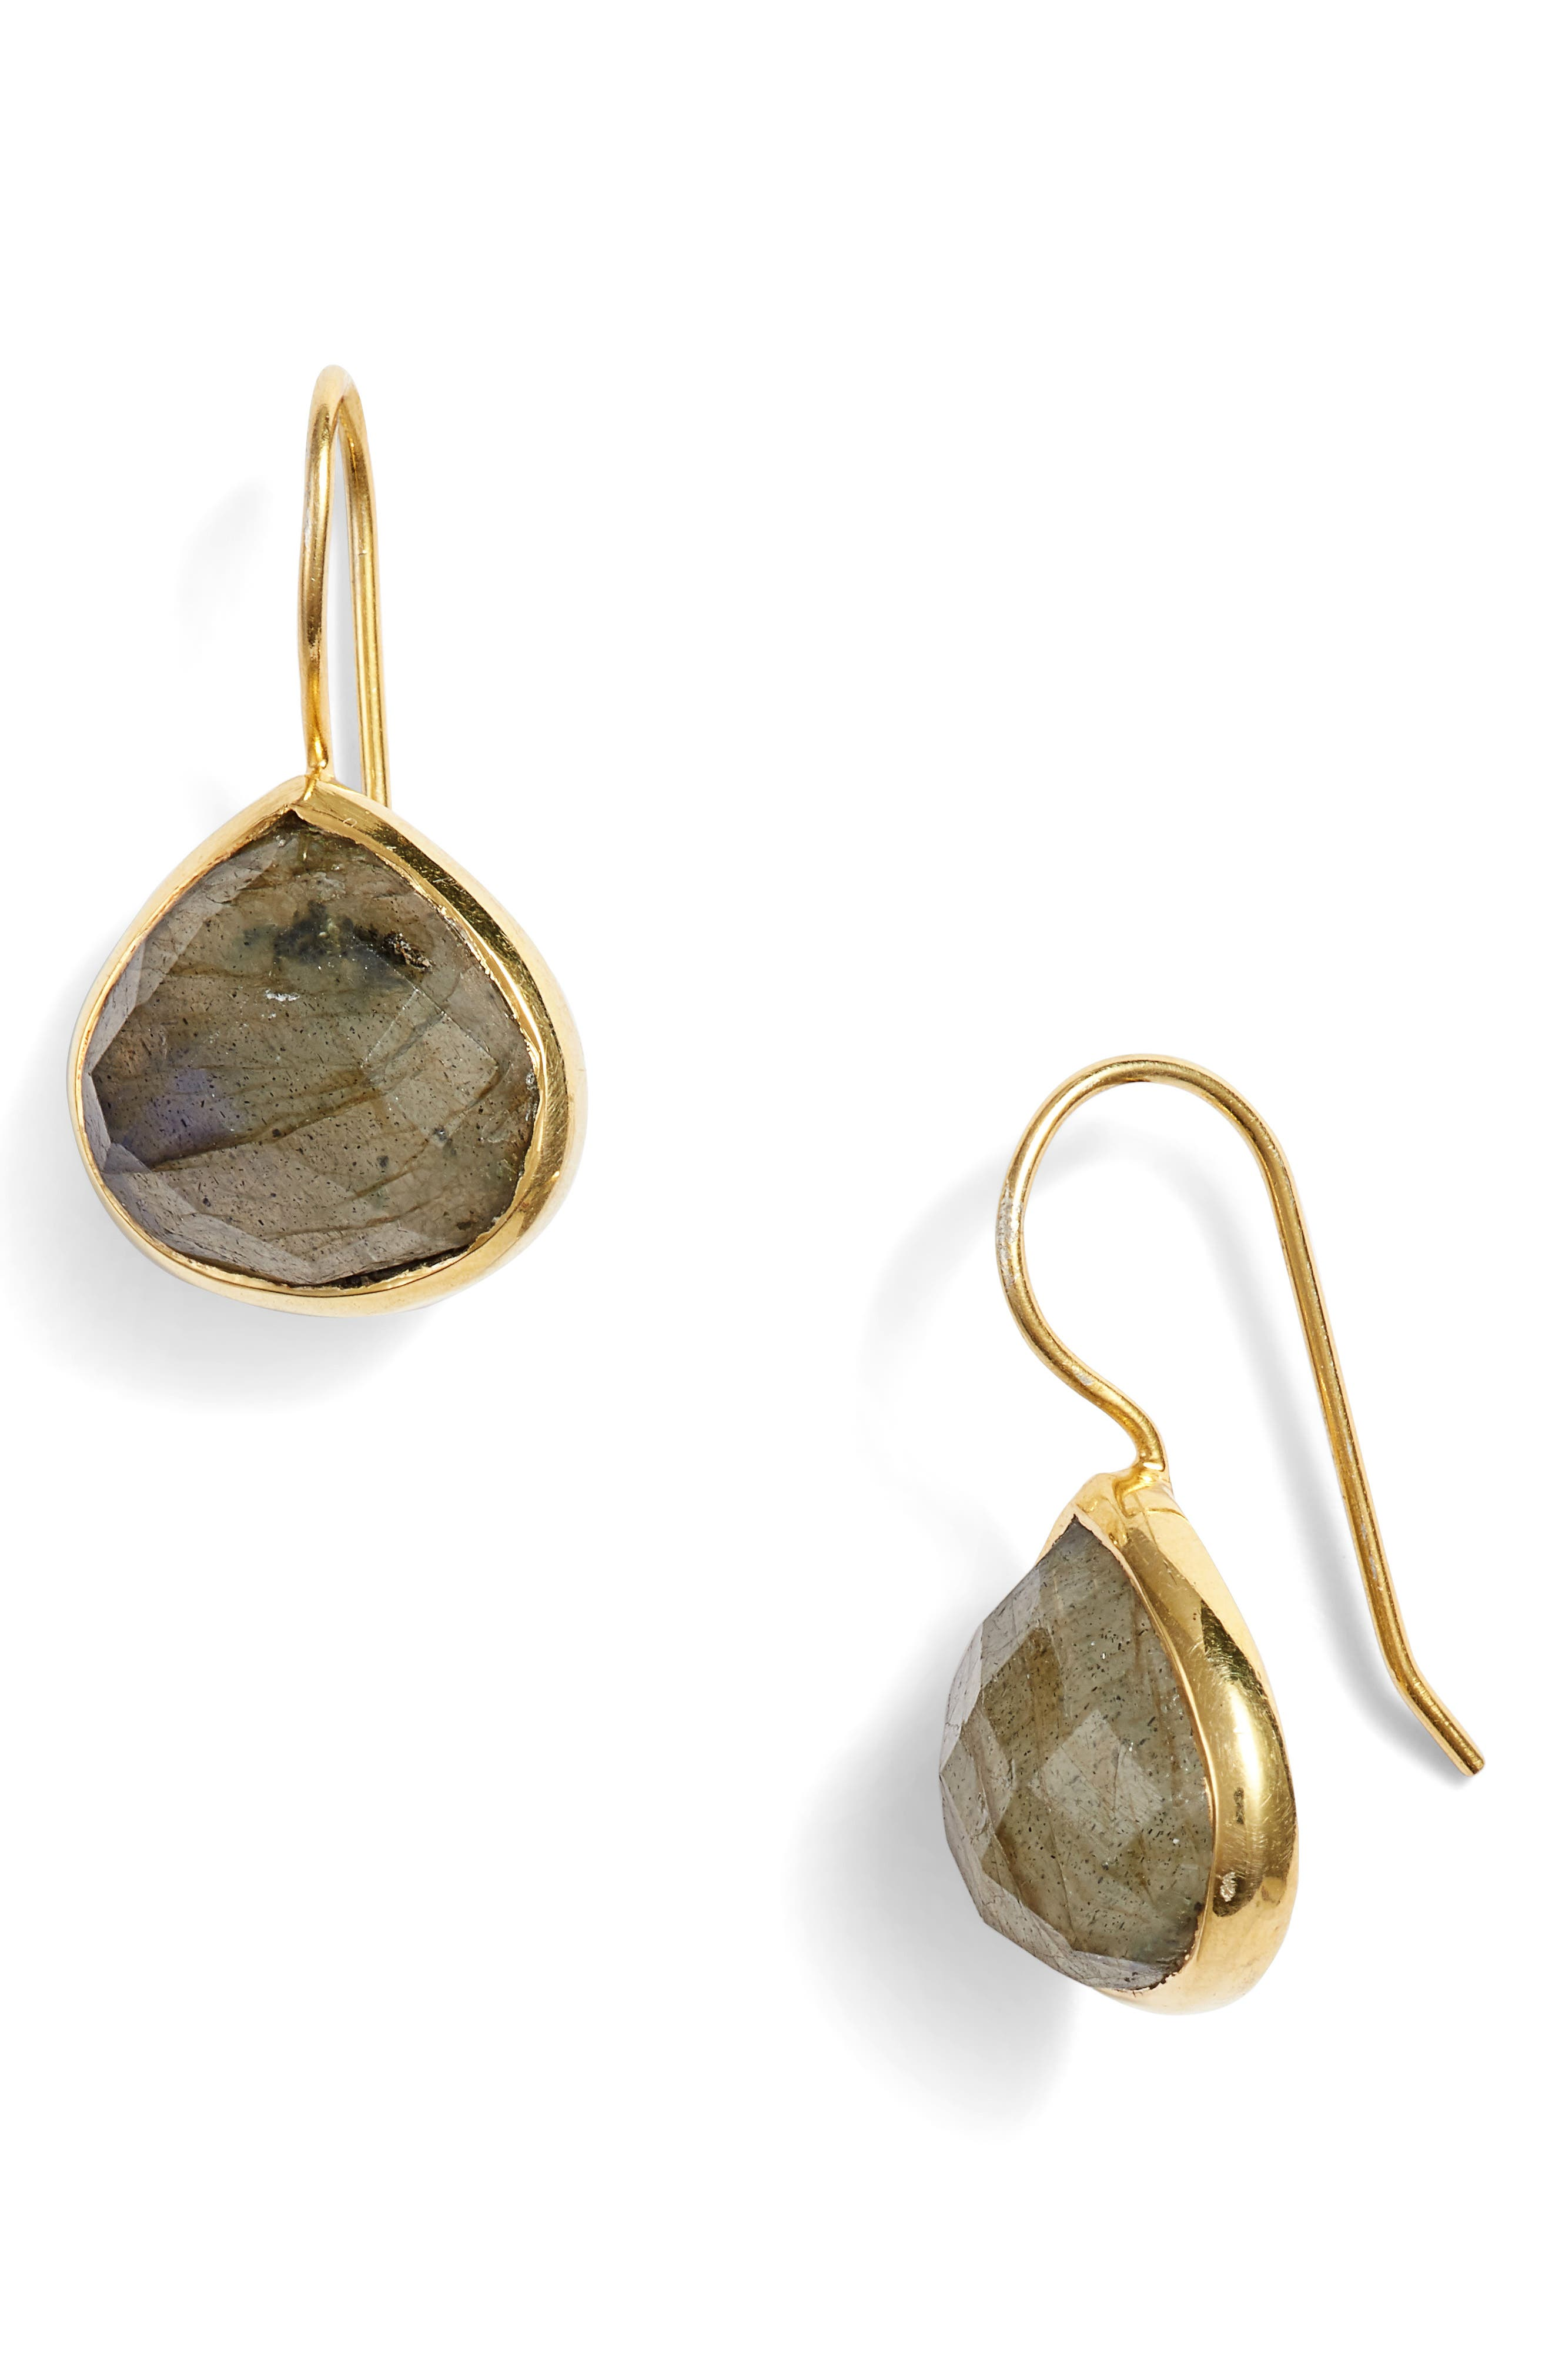 COLLECTIONS BY JOYA Turks and Caicos Stone Drop Earrings, Main, color, 200